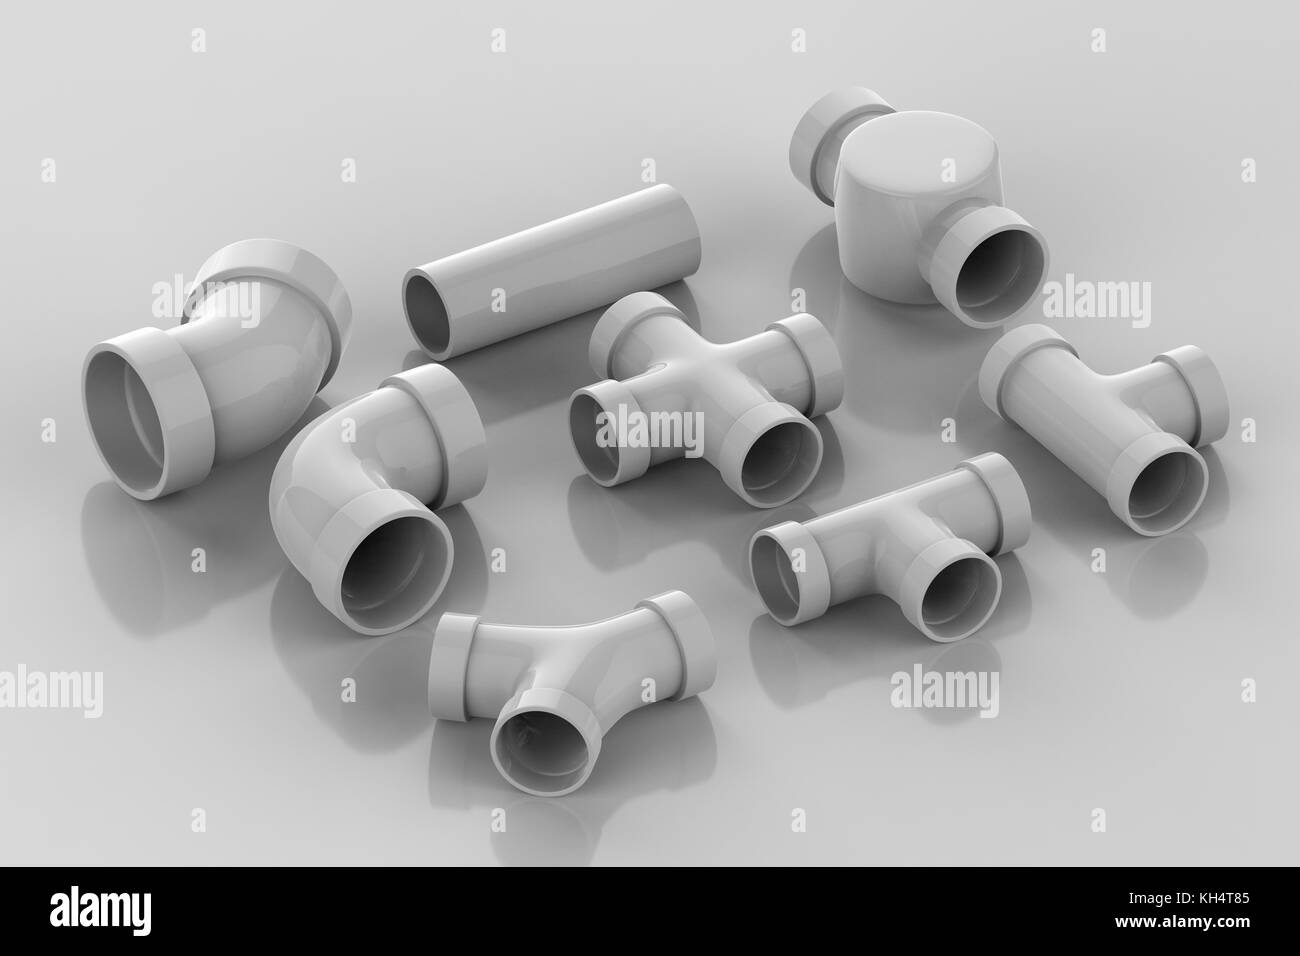 Pvc Joints Pvc Joints Photos Pvc Joints Images Alamy